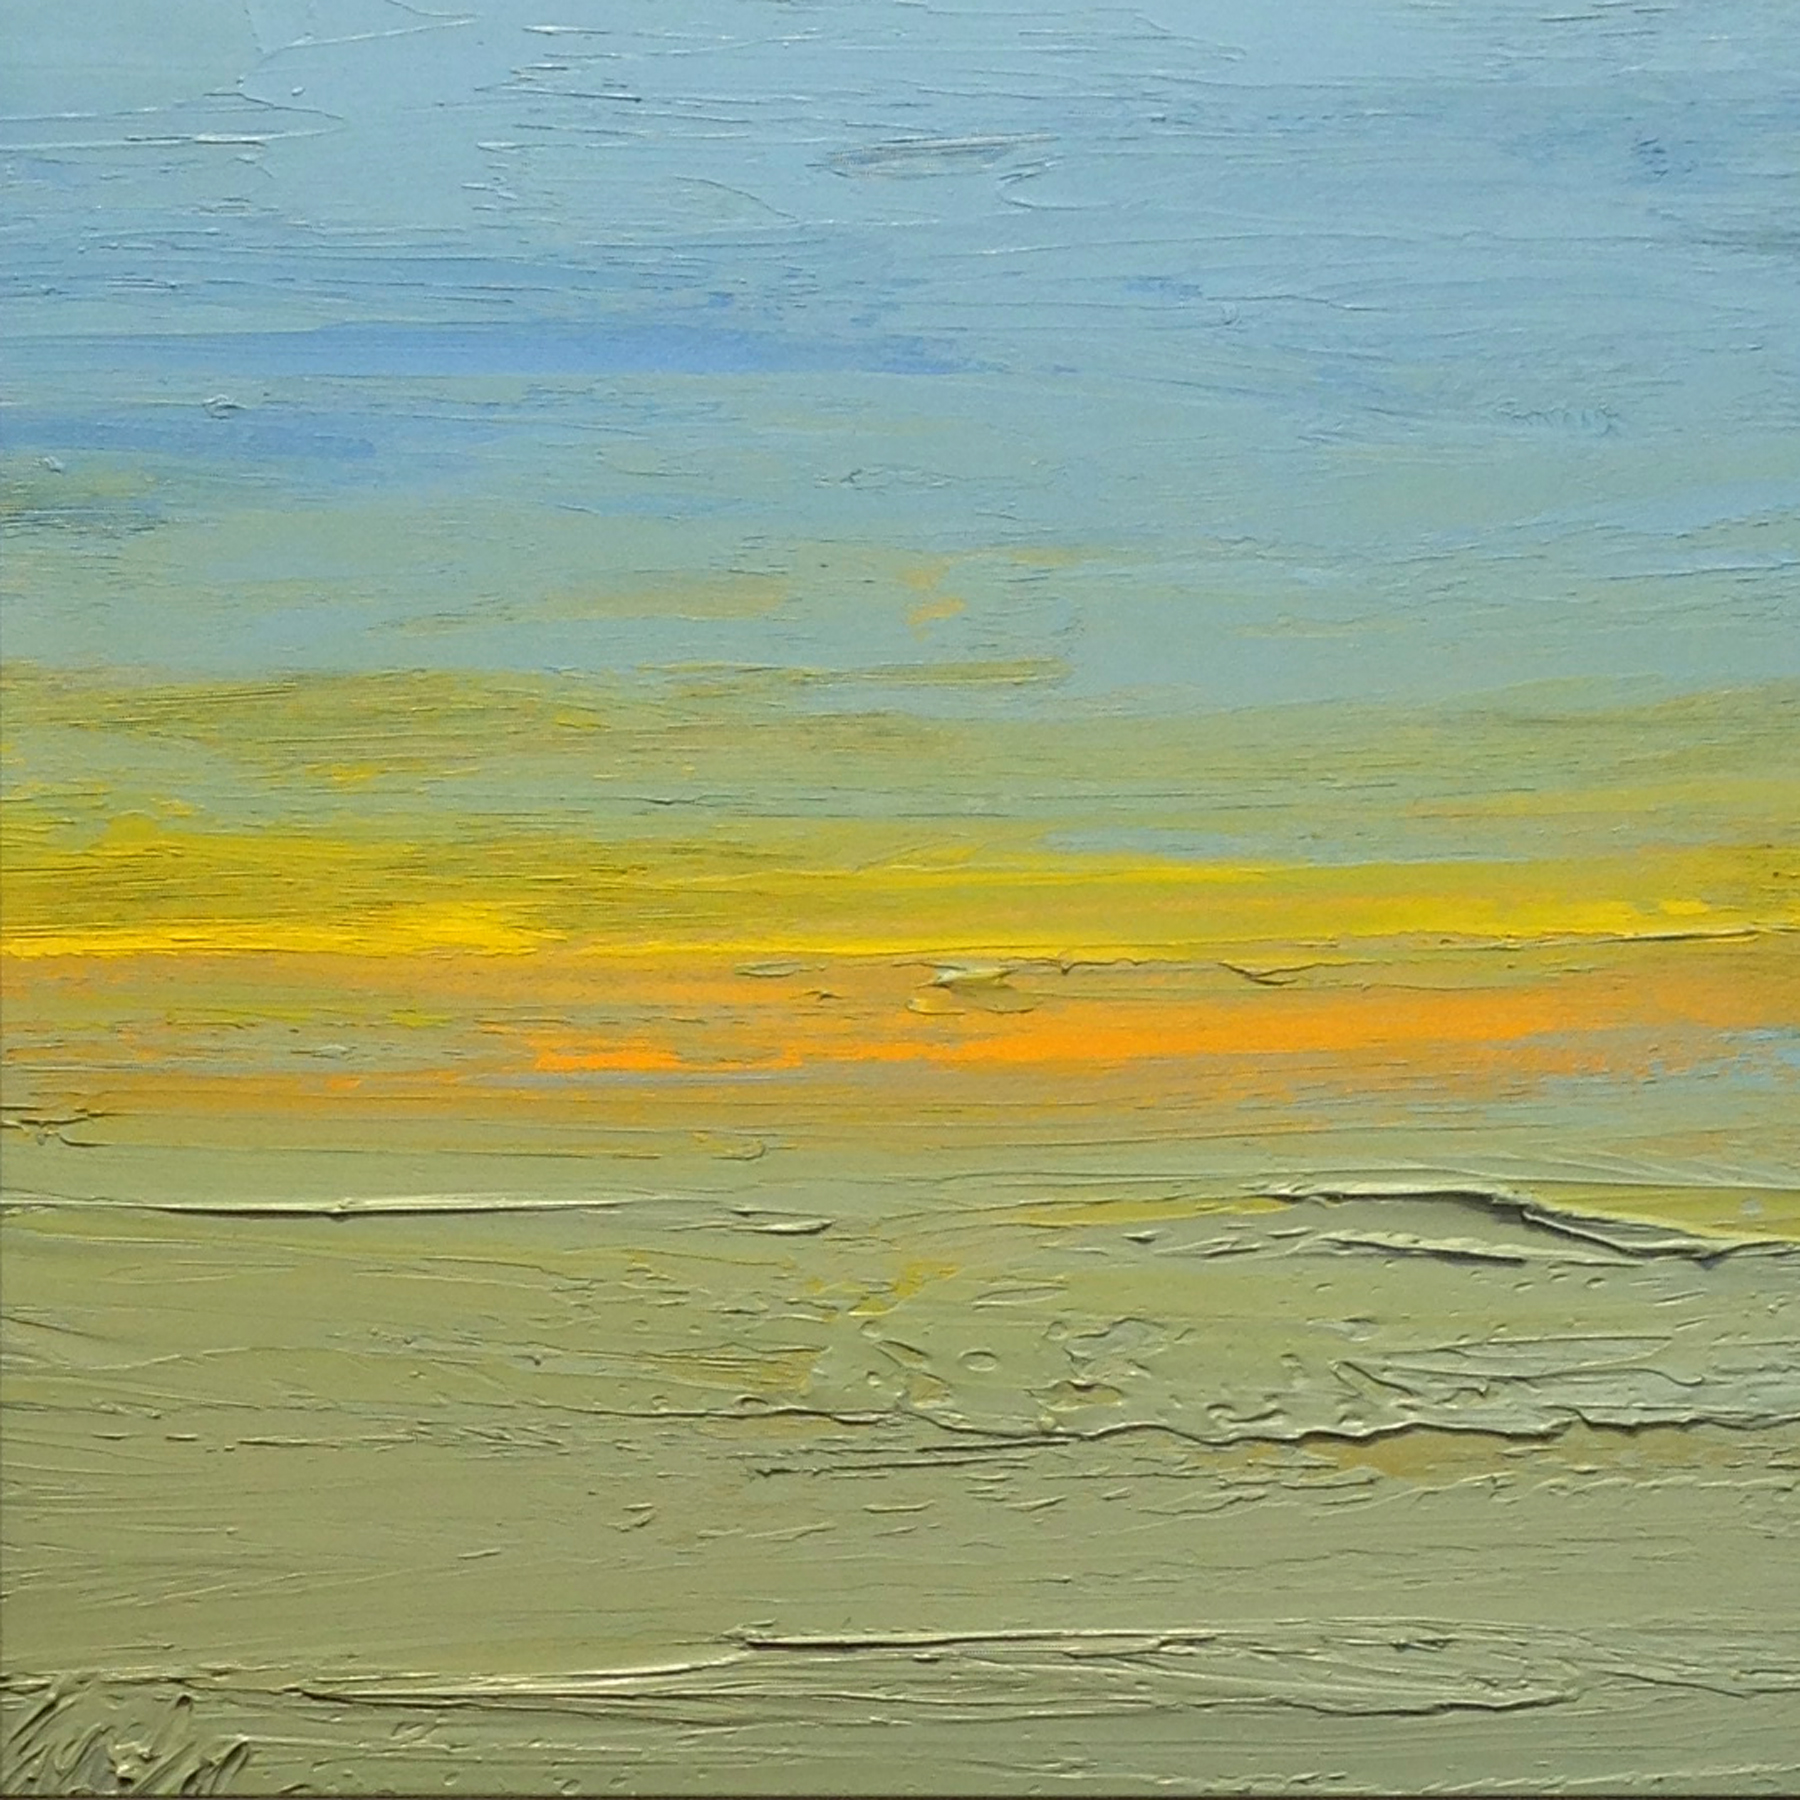 At The Horizon Study 3-9-2014, oil on board, 8 by 8 inches, 2014 - $750